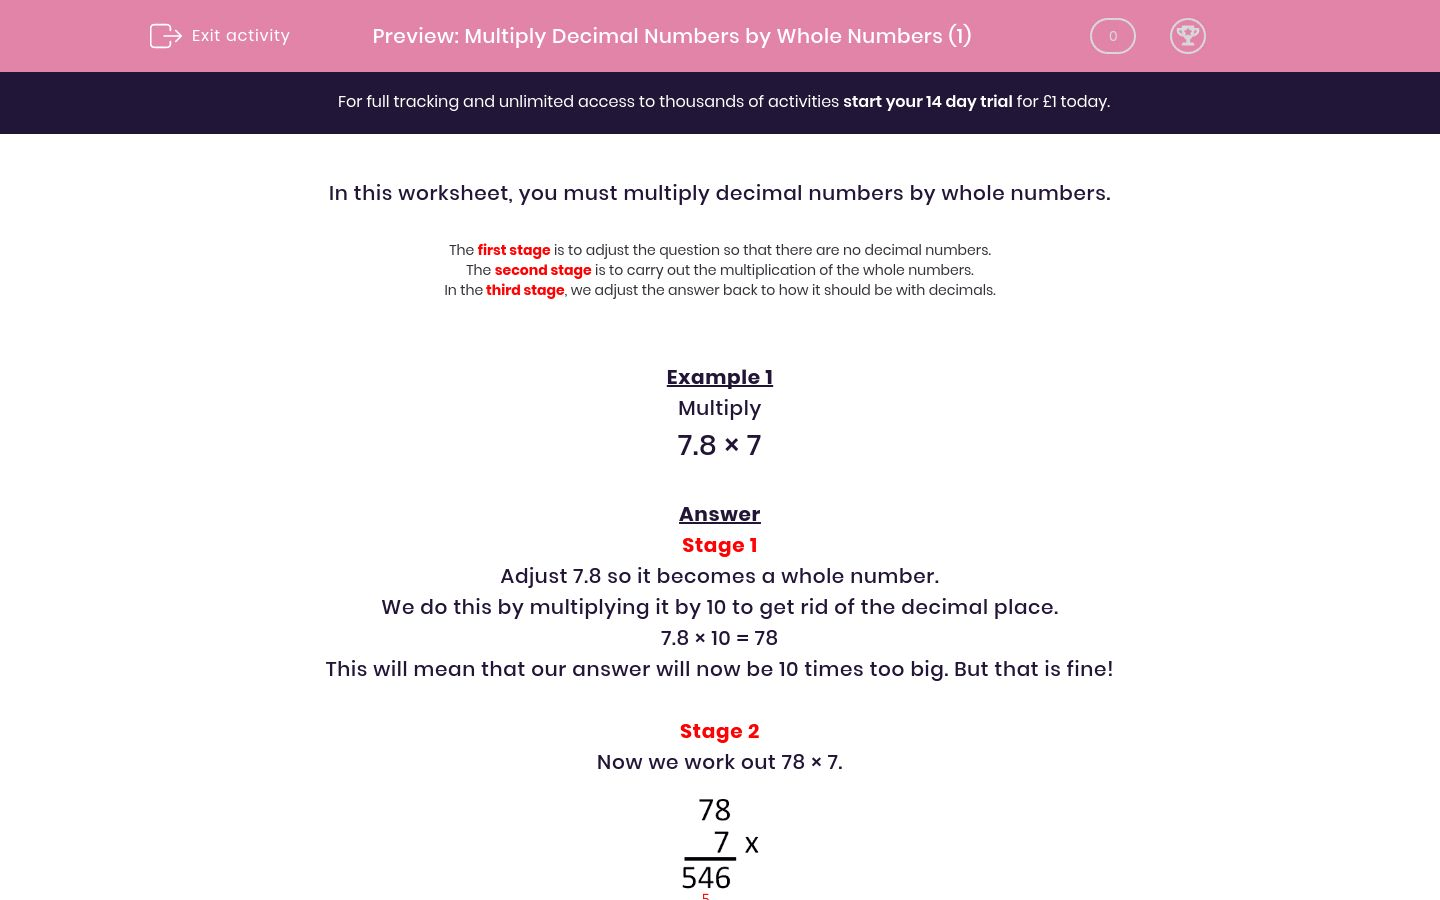 Multiply Decimal Numbers By Whole Numbers 1 Worksheet